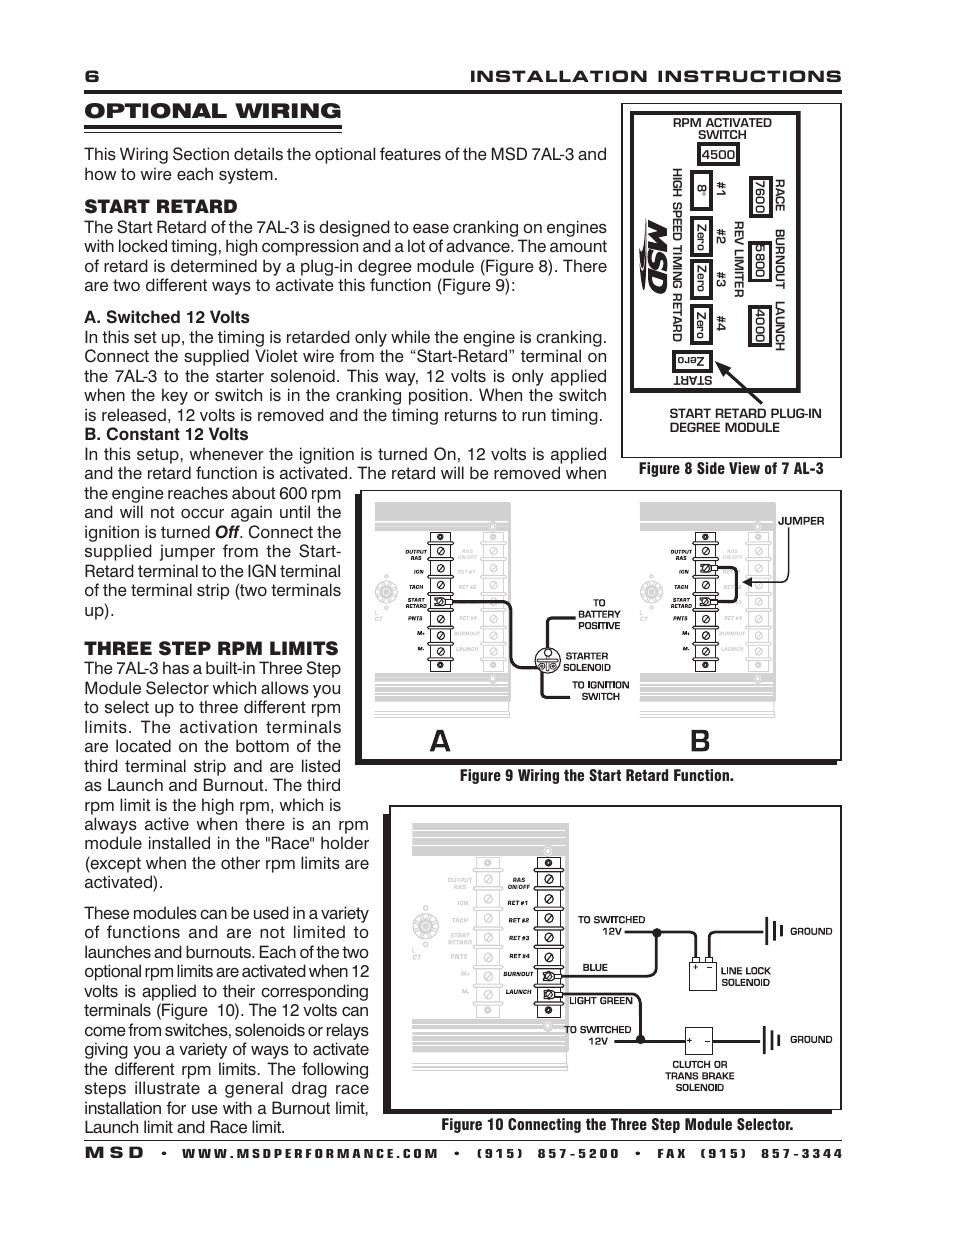 msd 7330 7al 3 ignition control installation page6 msd 6m 2 wiring diagram flaming river wiring diagram \u2022 wiring  at gsmx.co